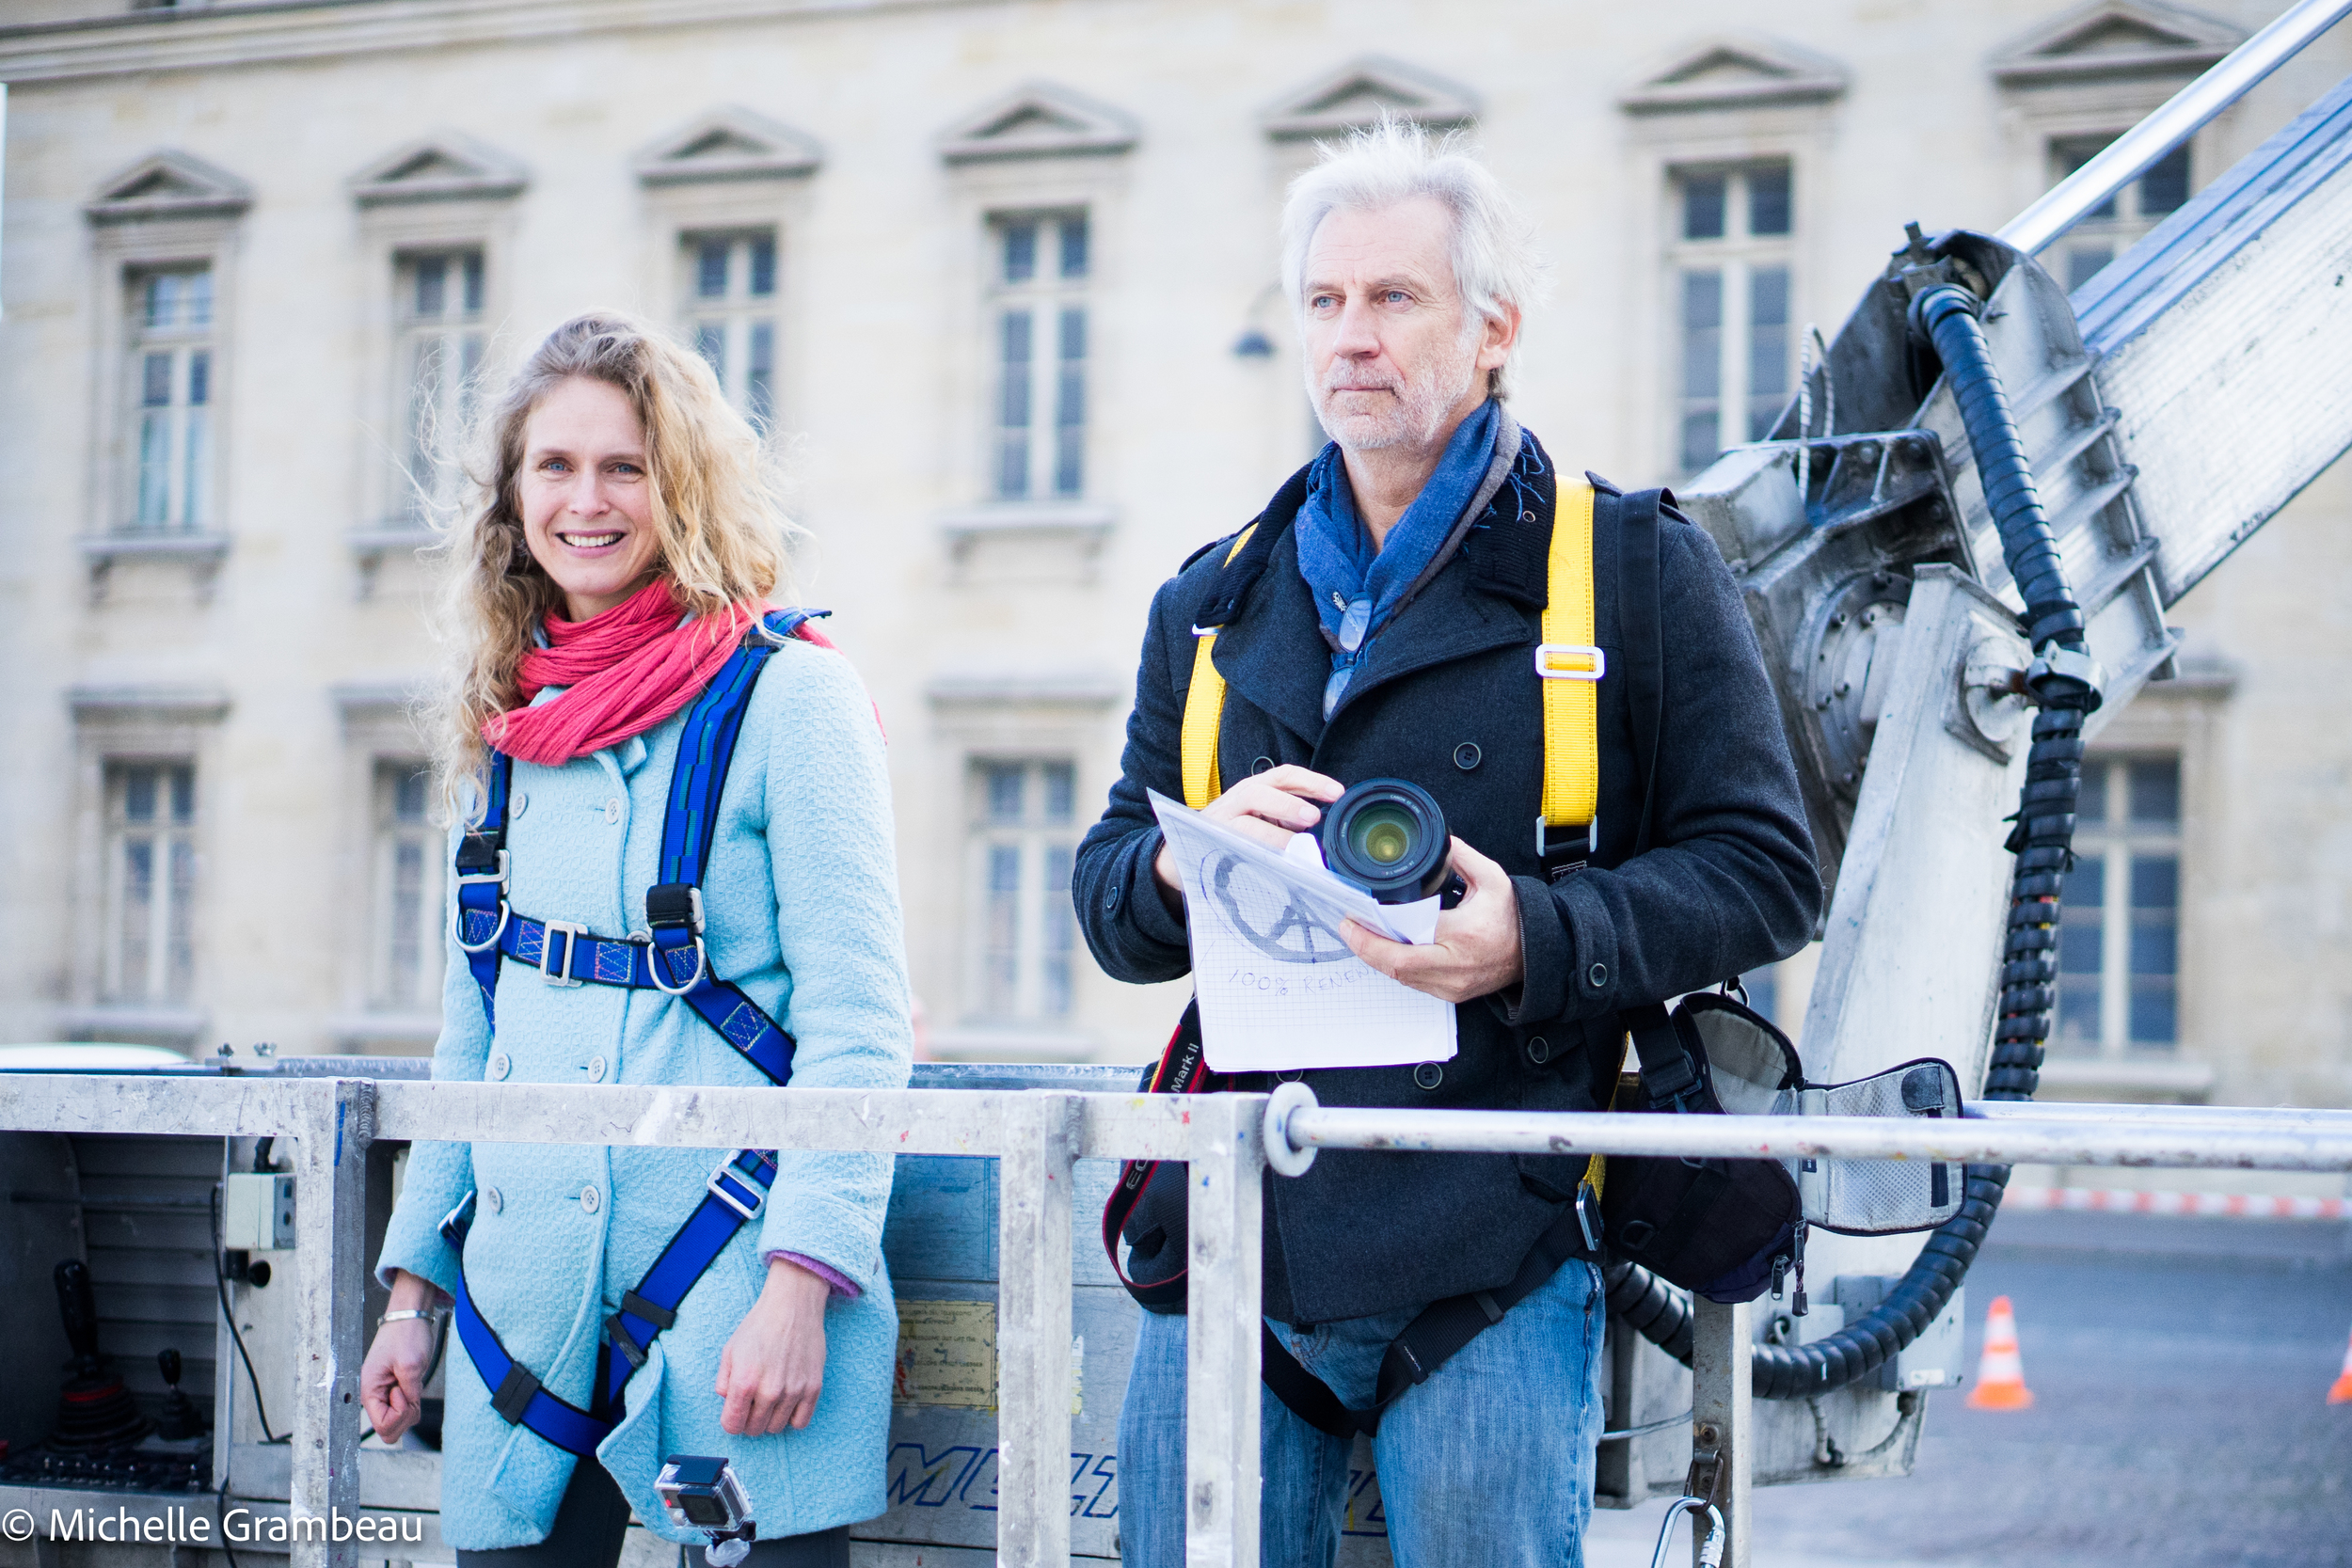 John Quigley and Magalie Bonneau - co-producers, scouting early morning from a 52m crane. Drone use was prohibited.